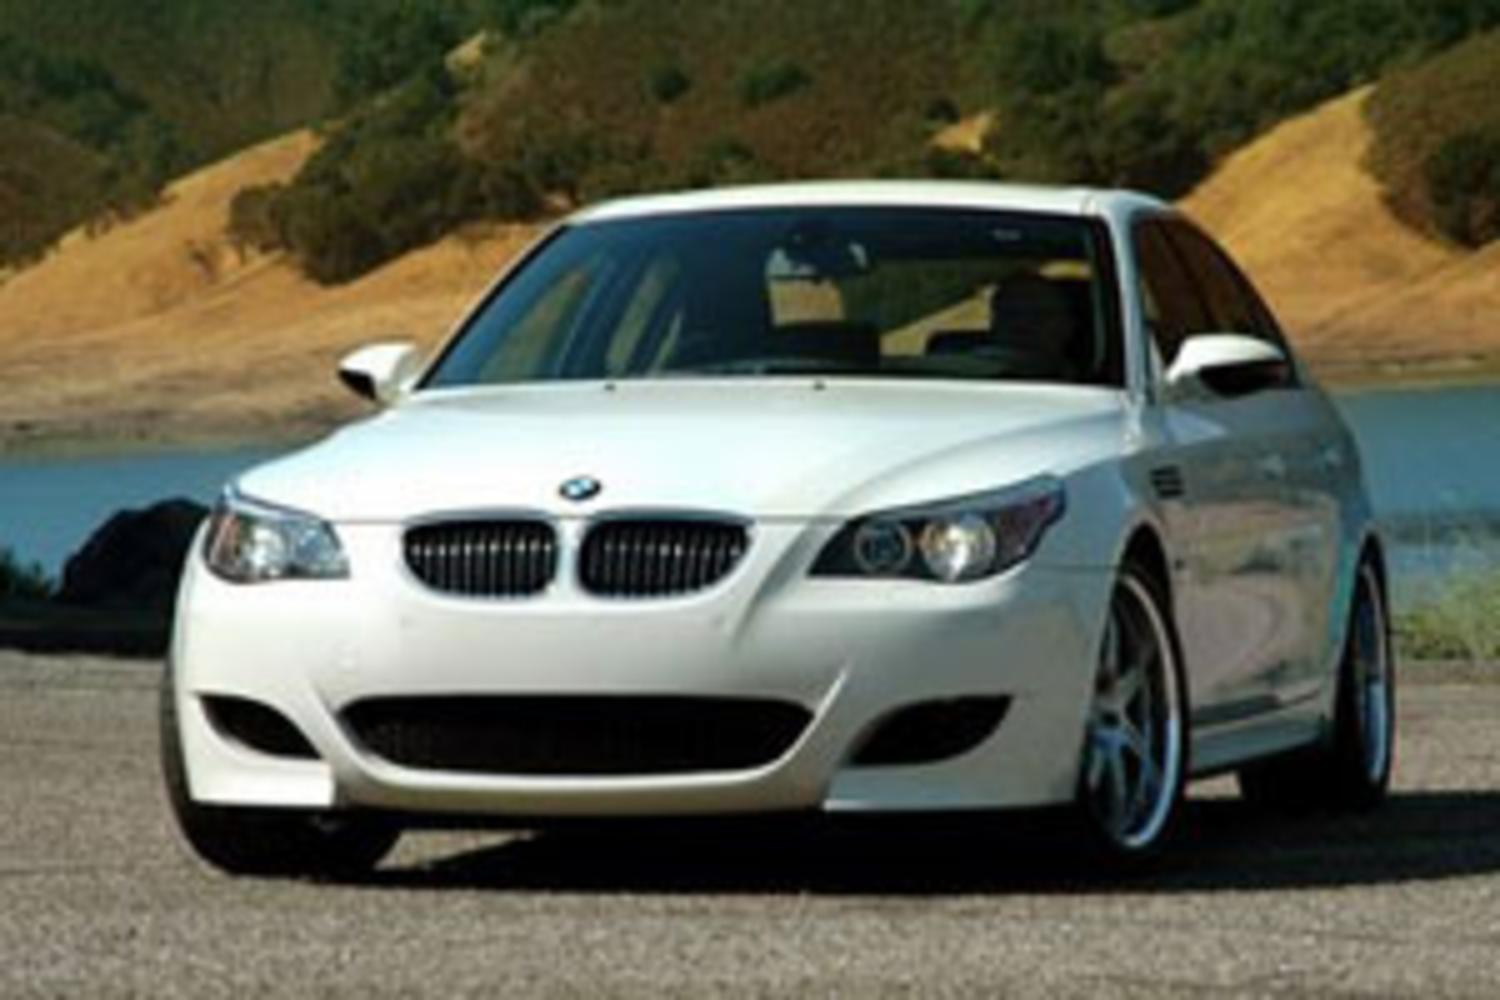 all bmw cars cars wallpapers and pictures car images car pics carpicture. Black Bedroom Furniture Sets. Home Design Ideas